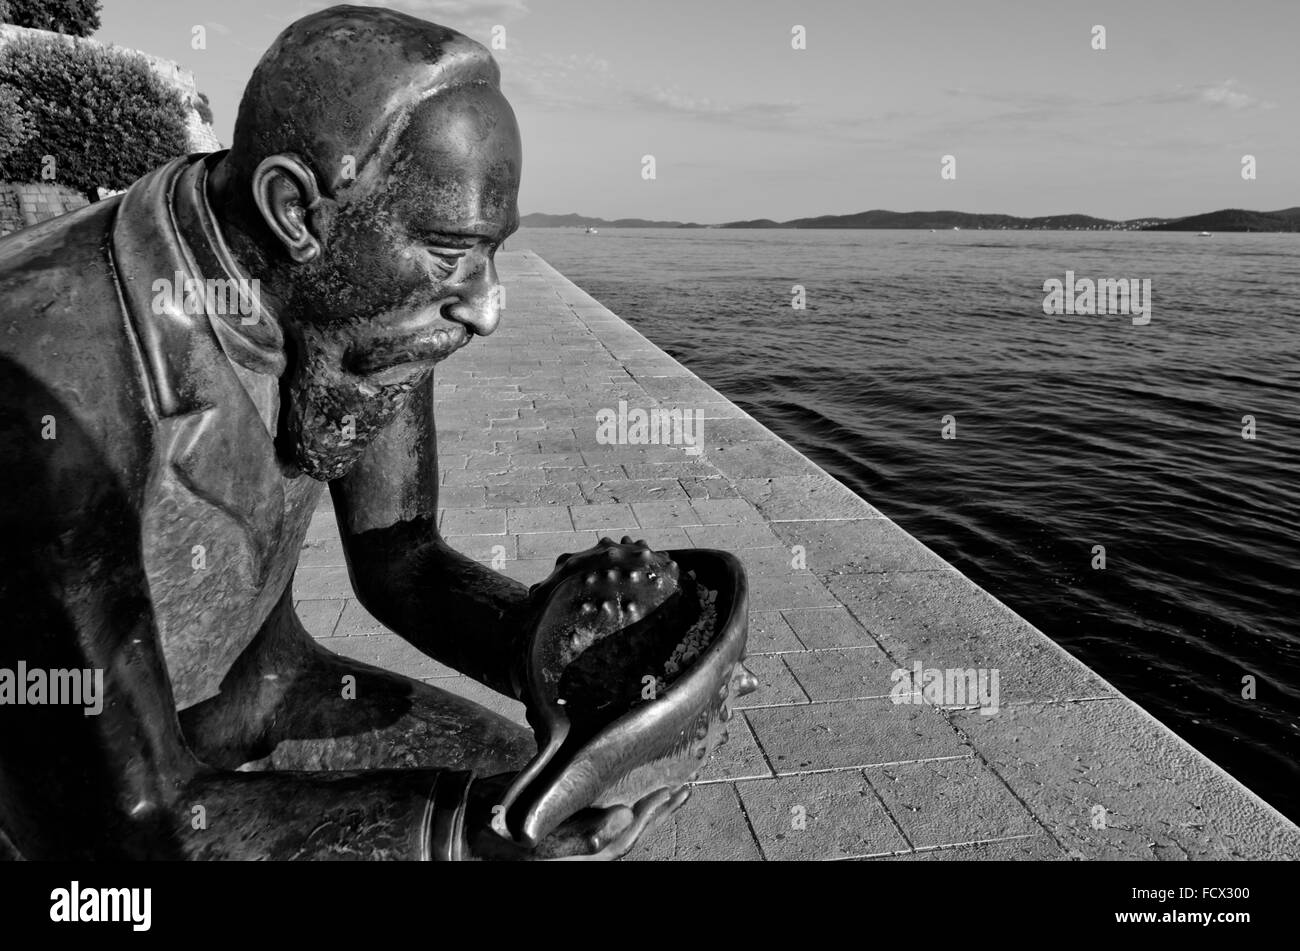 Statue of Špiro Brusina in Zadar Croatia - Stock Image